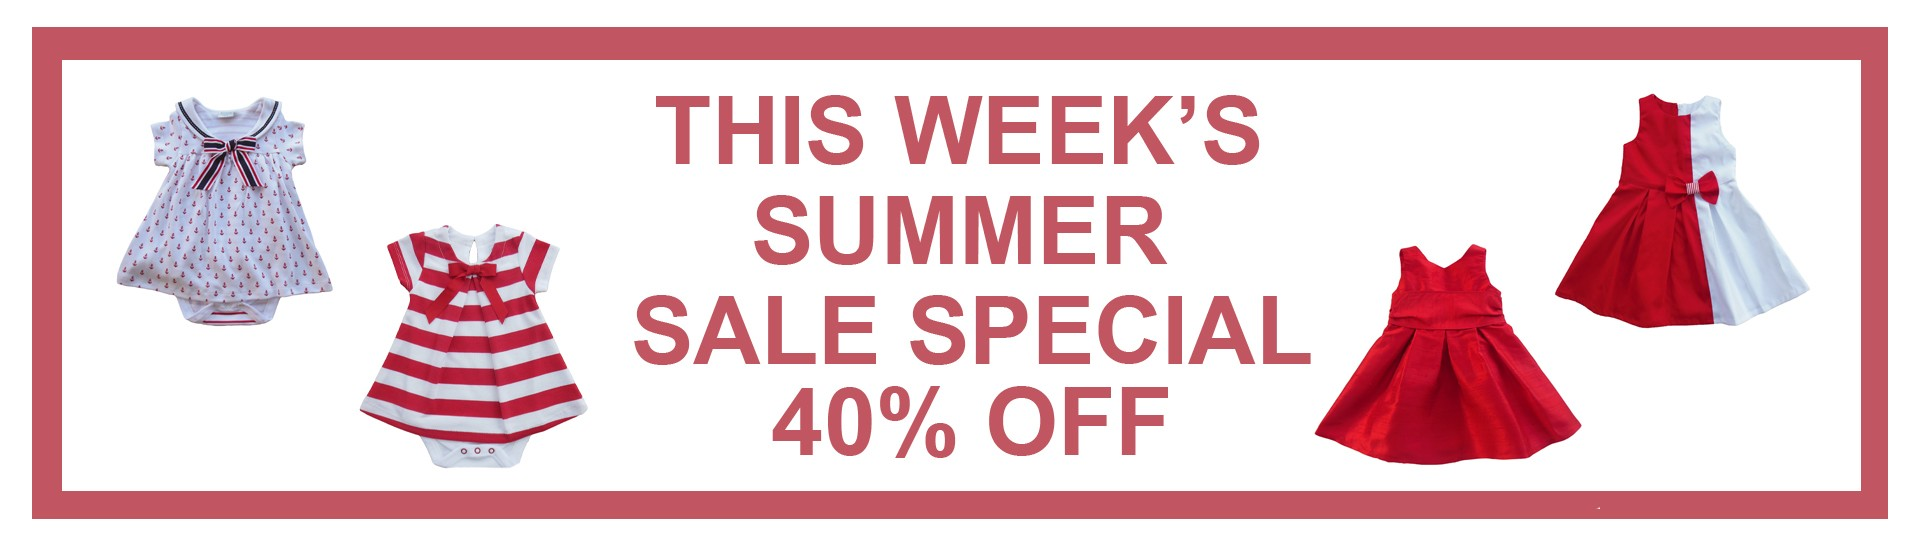 Summer Sale Special 1